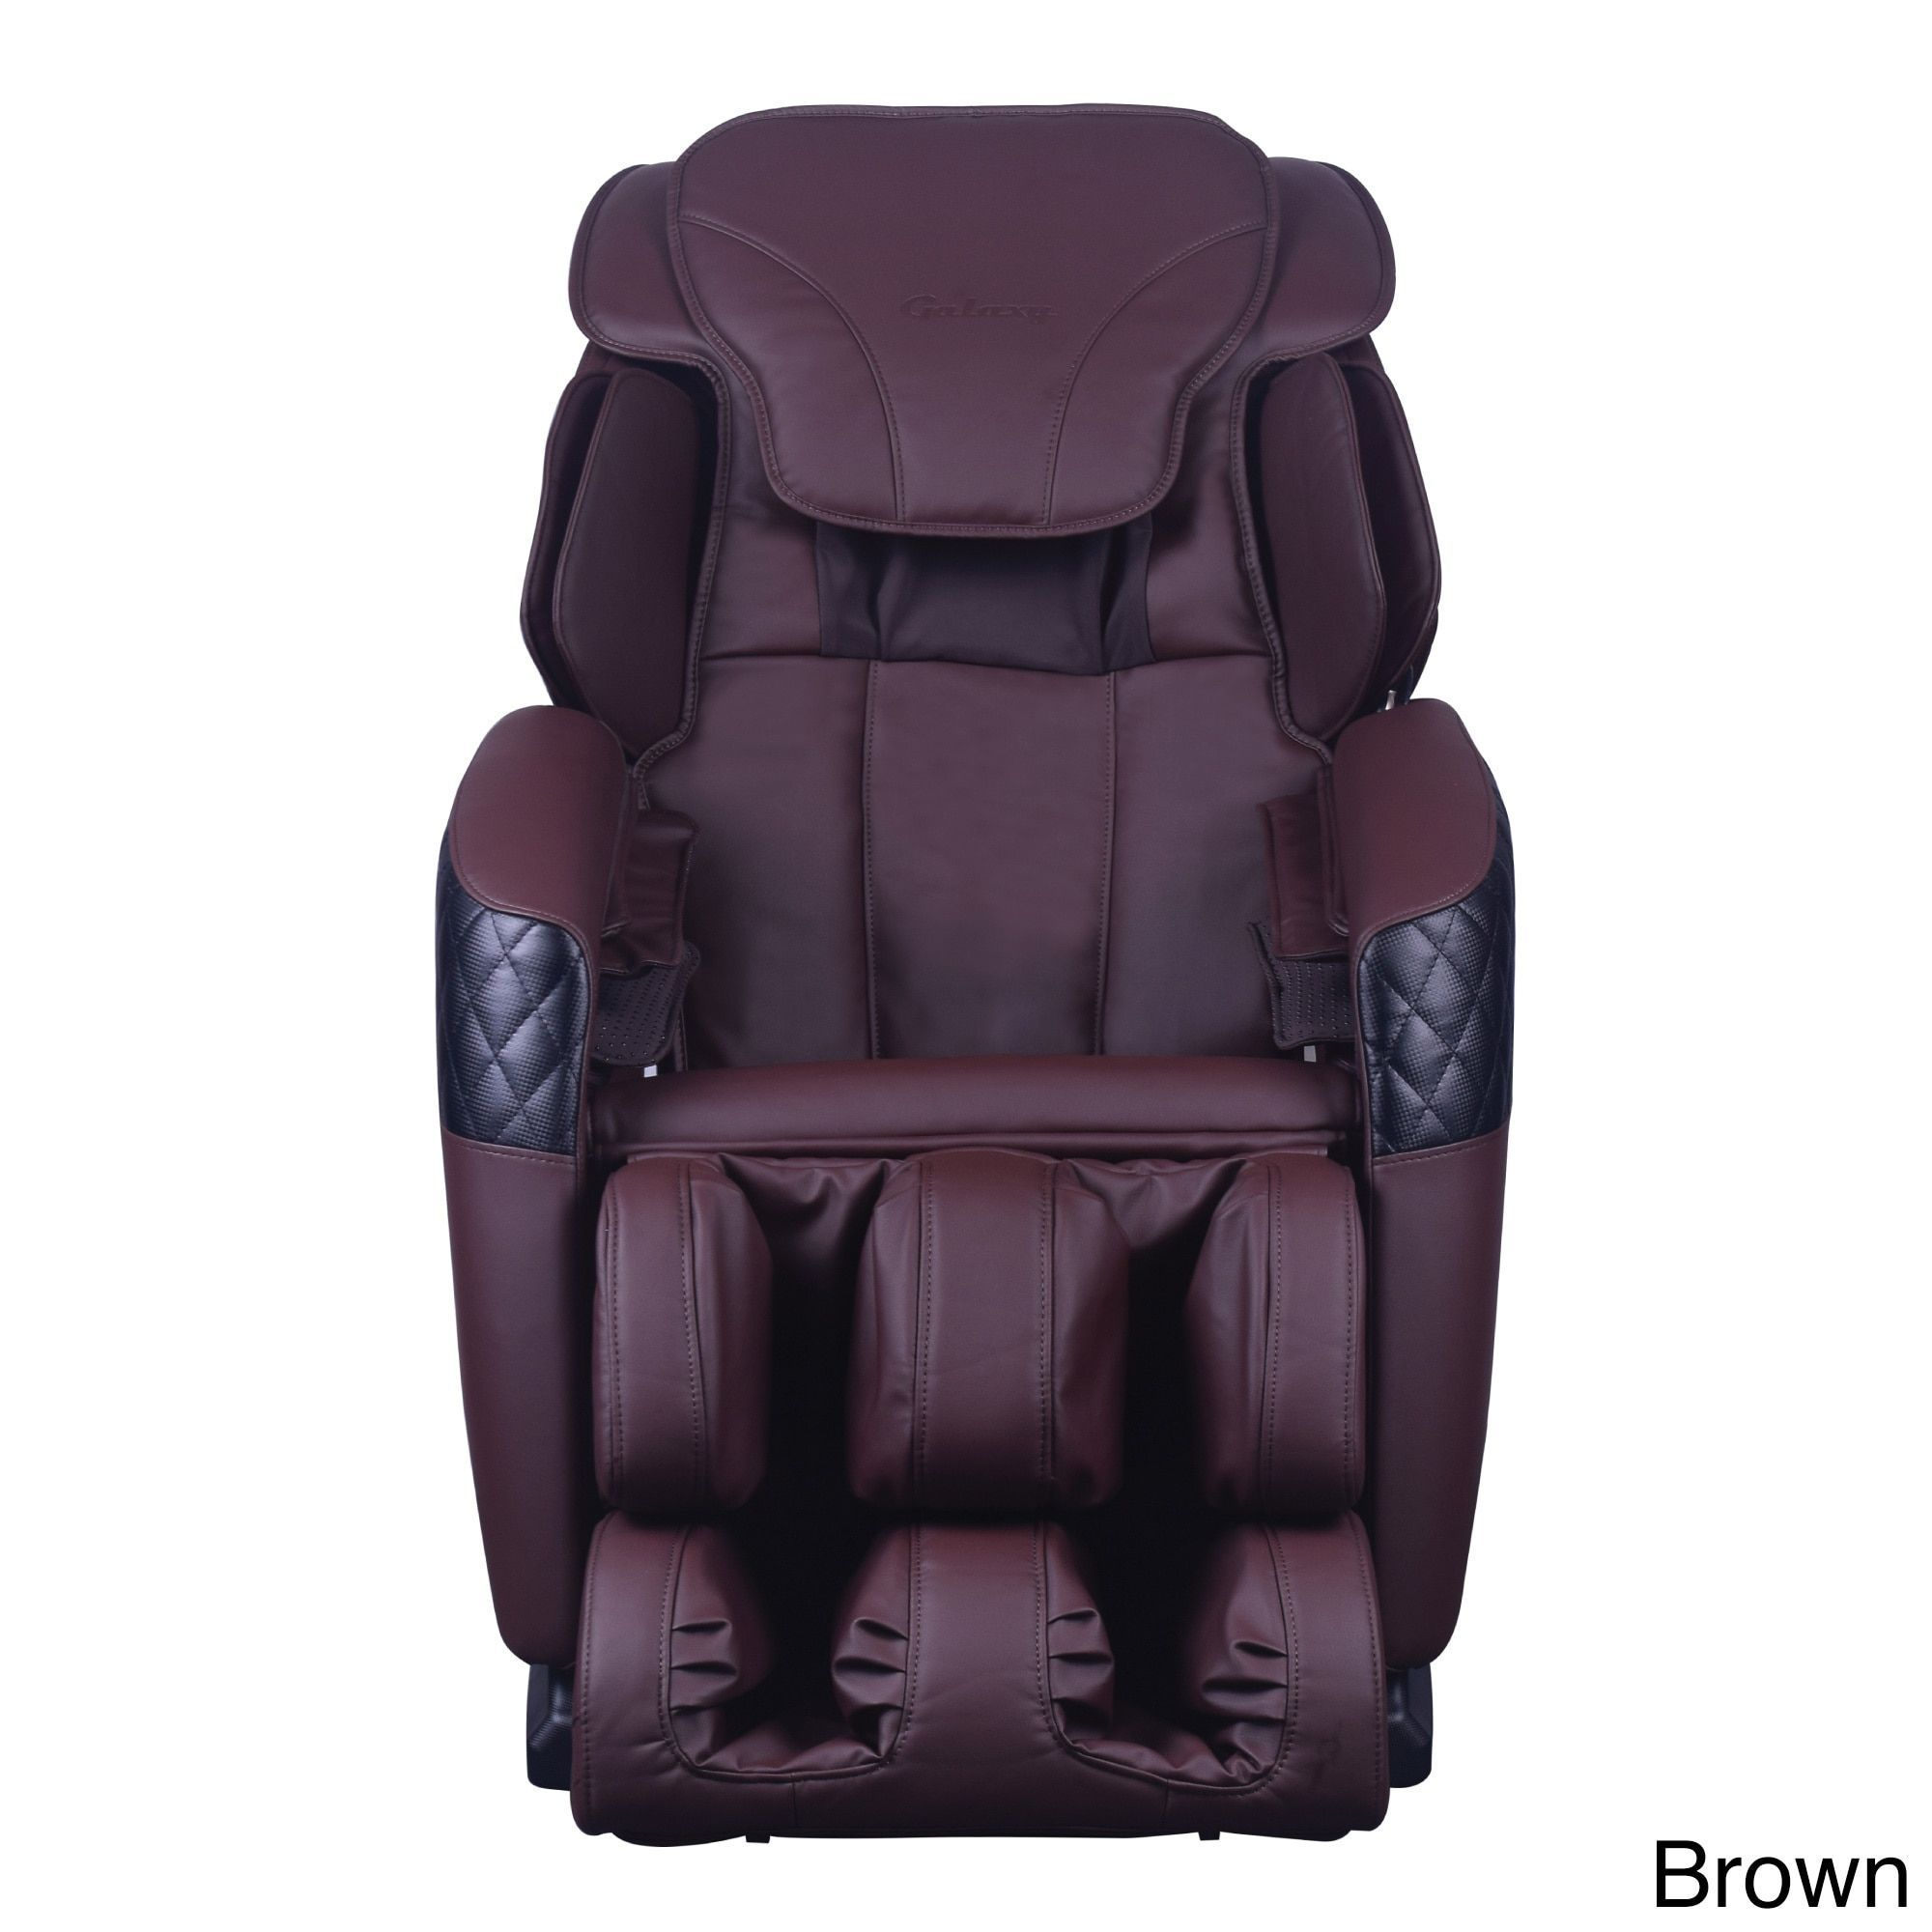 manual sale chair for image n shiatsu ijoy massage review sharper used design cushion